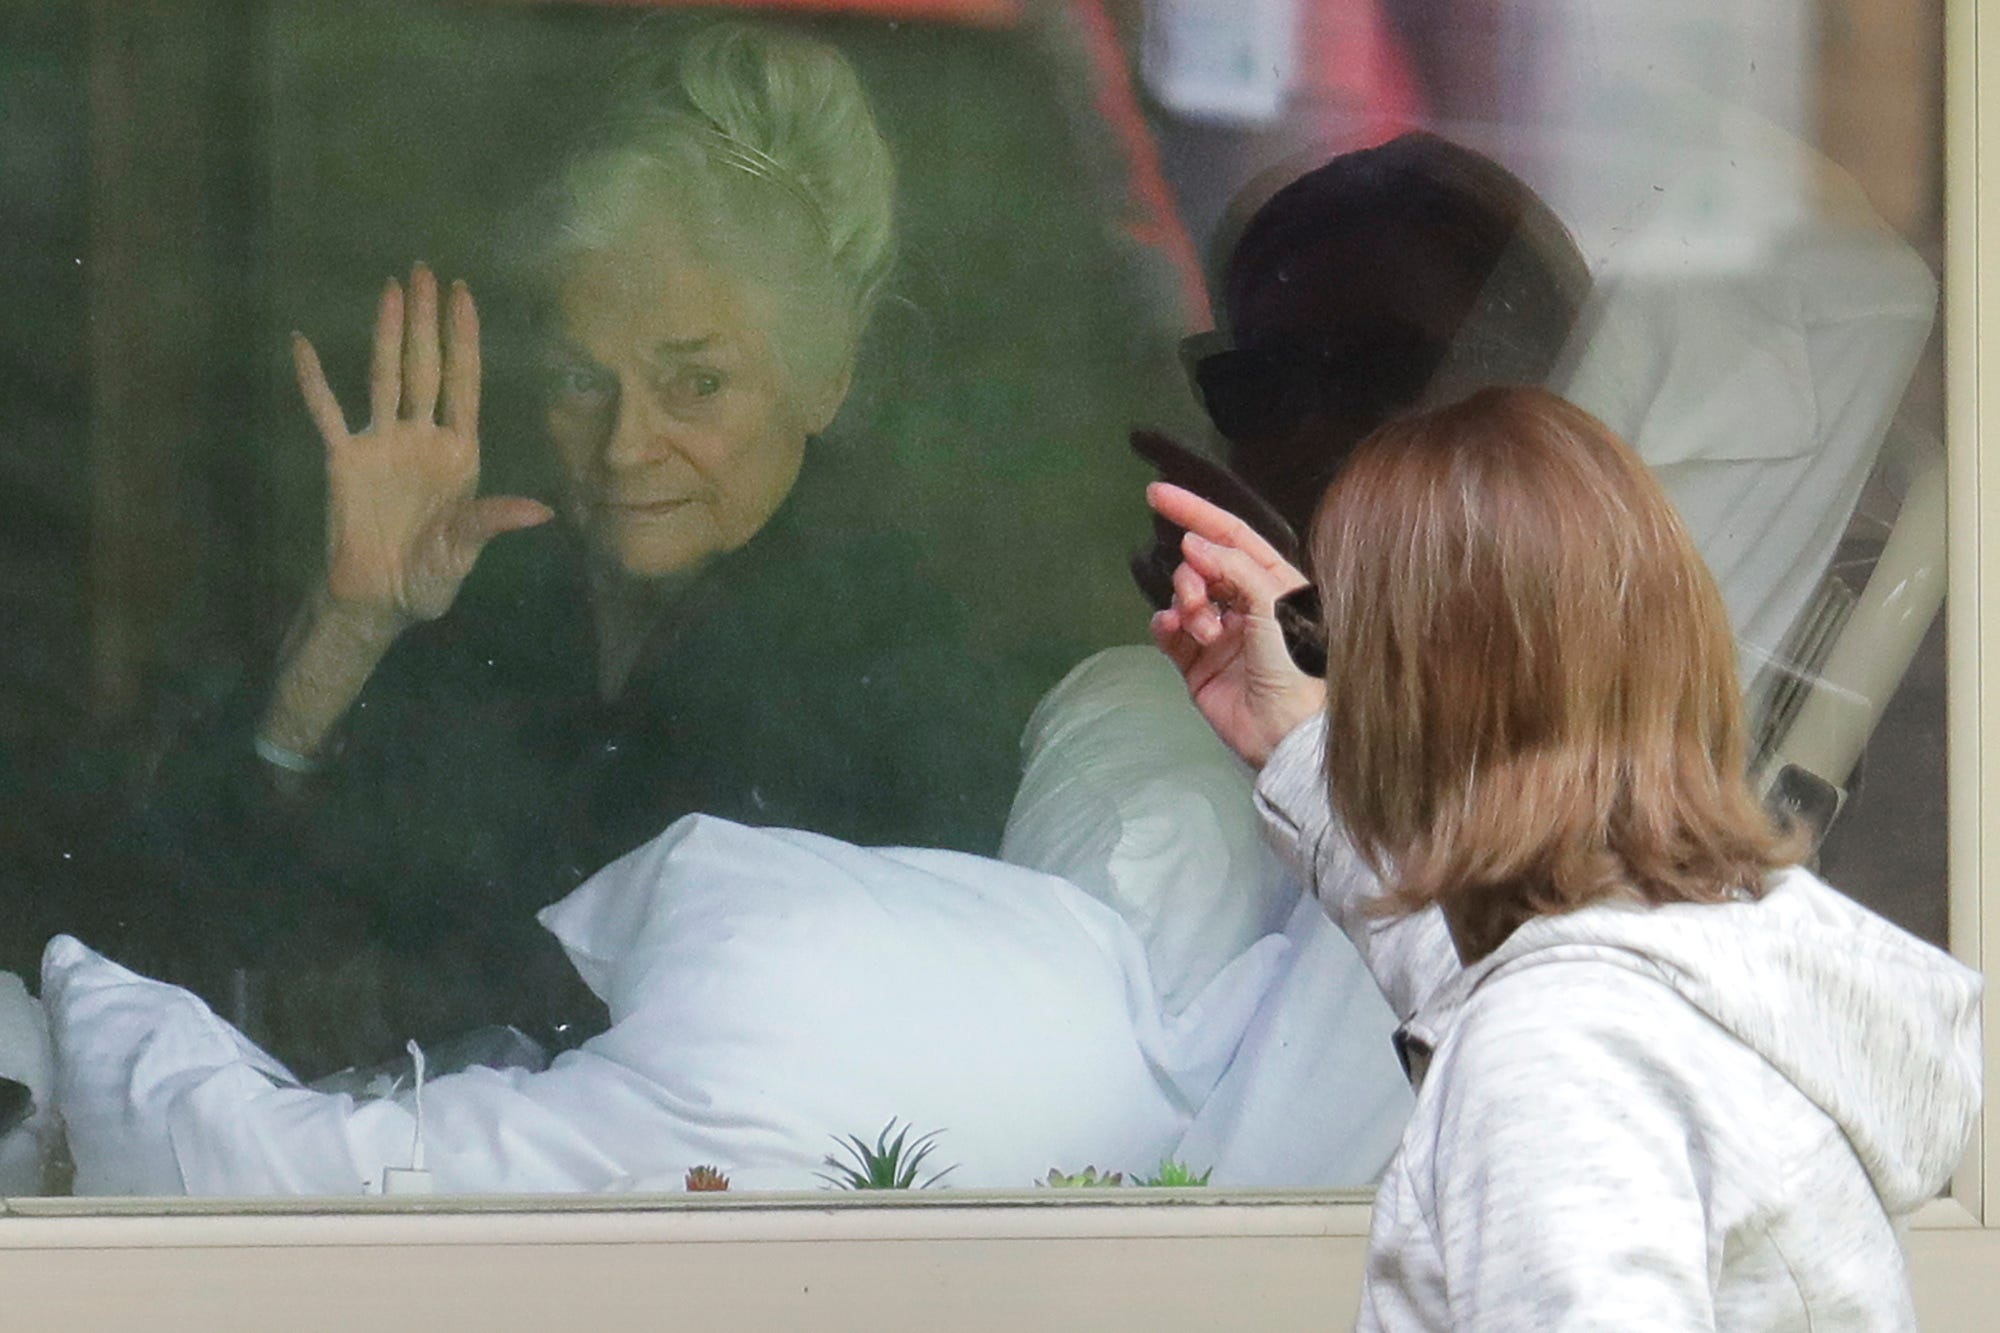 Slide 93 of 105: Judie Shape, left, who has tested positive for the coronavirus, waves to her daughter, Lori Spencer, right, Wednesday, March 11, 2020, as they visit on the phone and look at each other through a window at the Life Care Center in Kirkland, Wash., near Seattle. In-person visits are not allowed at the nursing home. The vast majority of people recover from the new coronavirus. According to the World Health Organization, most people recover in about two to six weeks, depending on the severity of the illness.